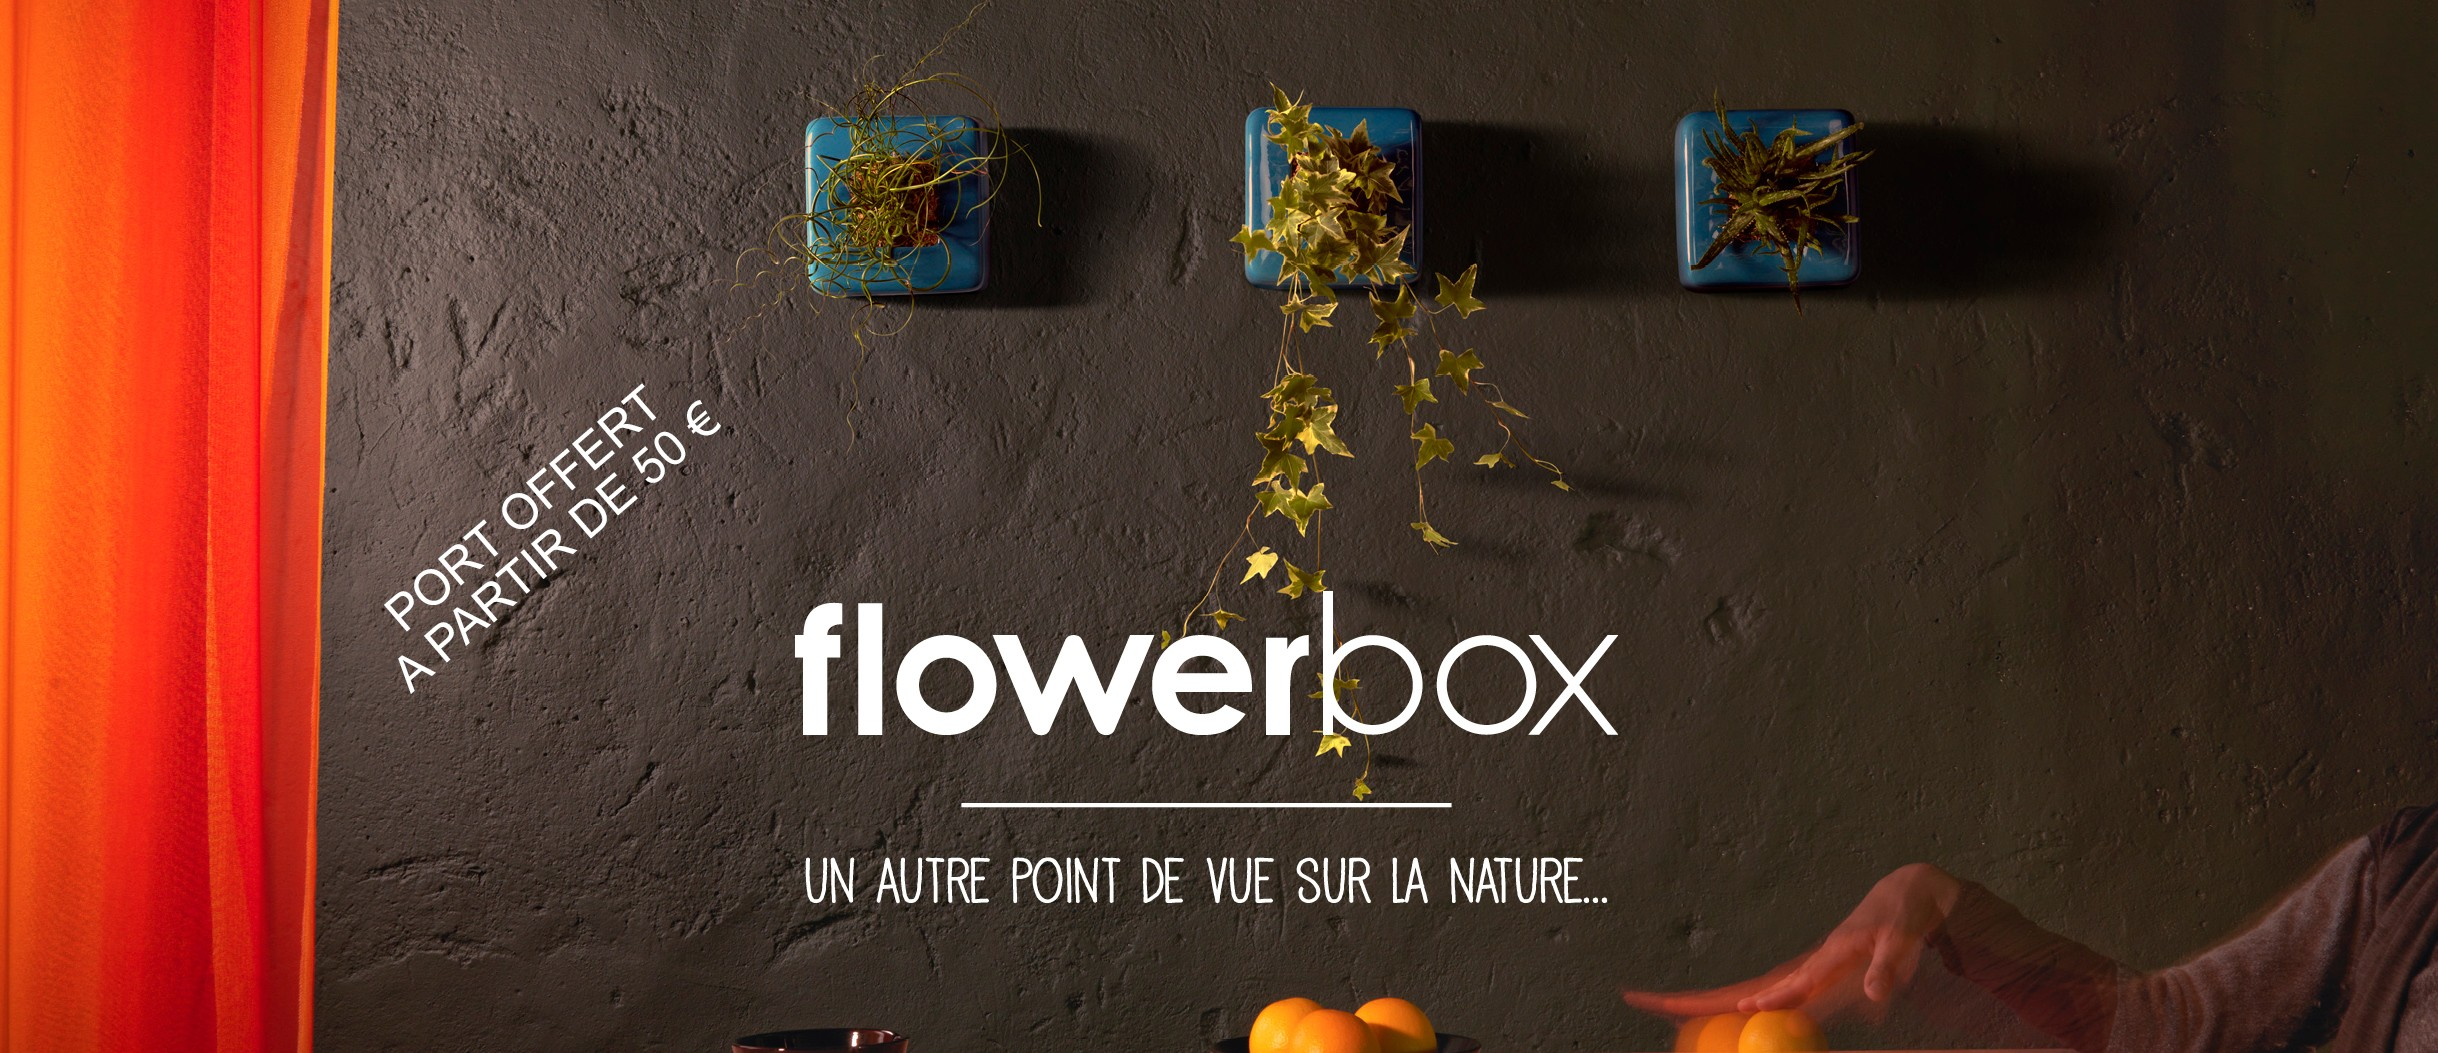 Collection flowerbox